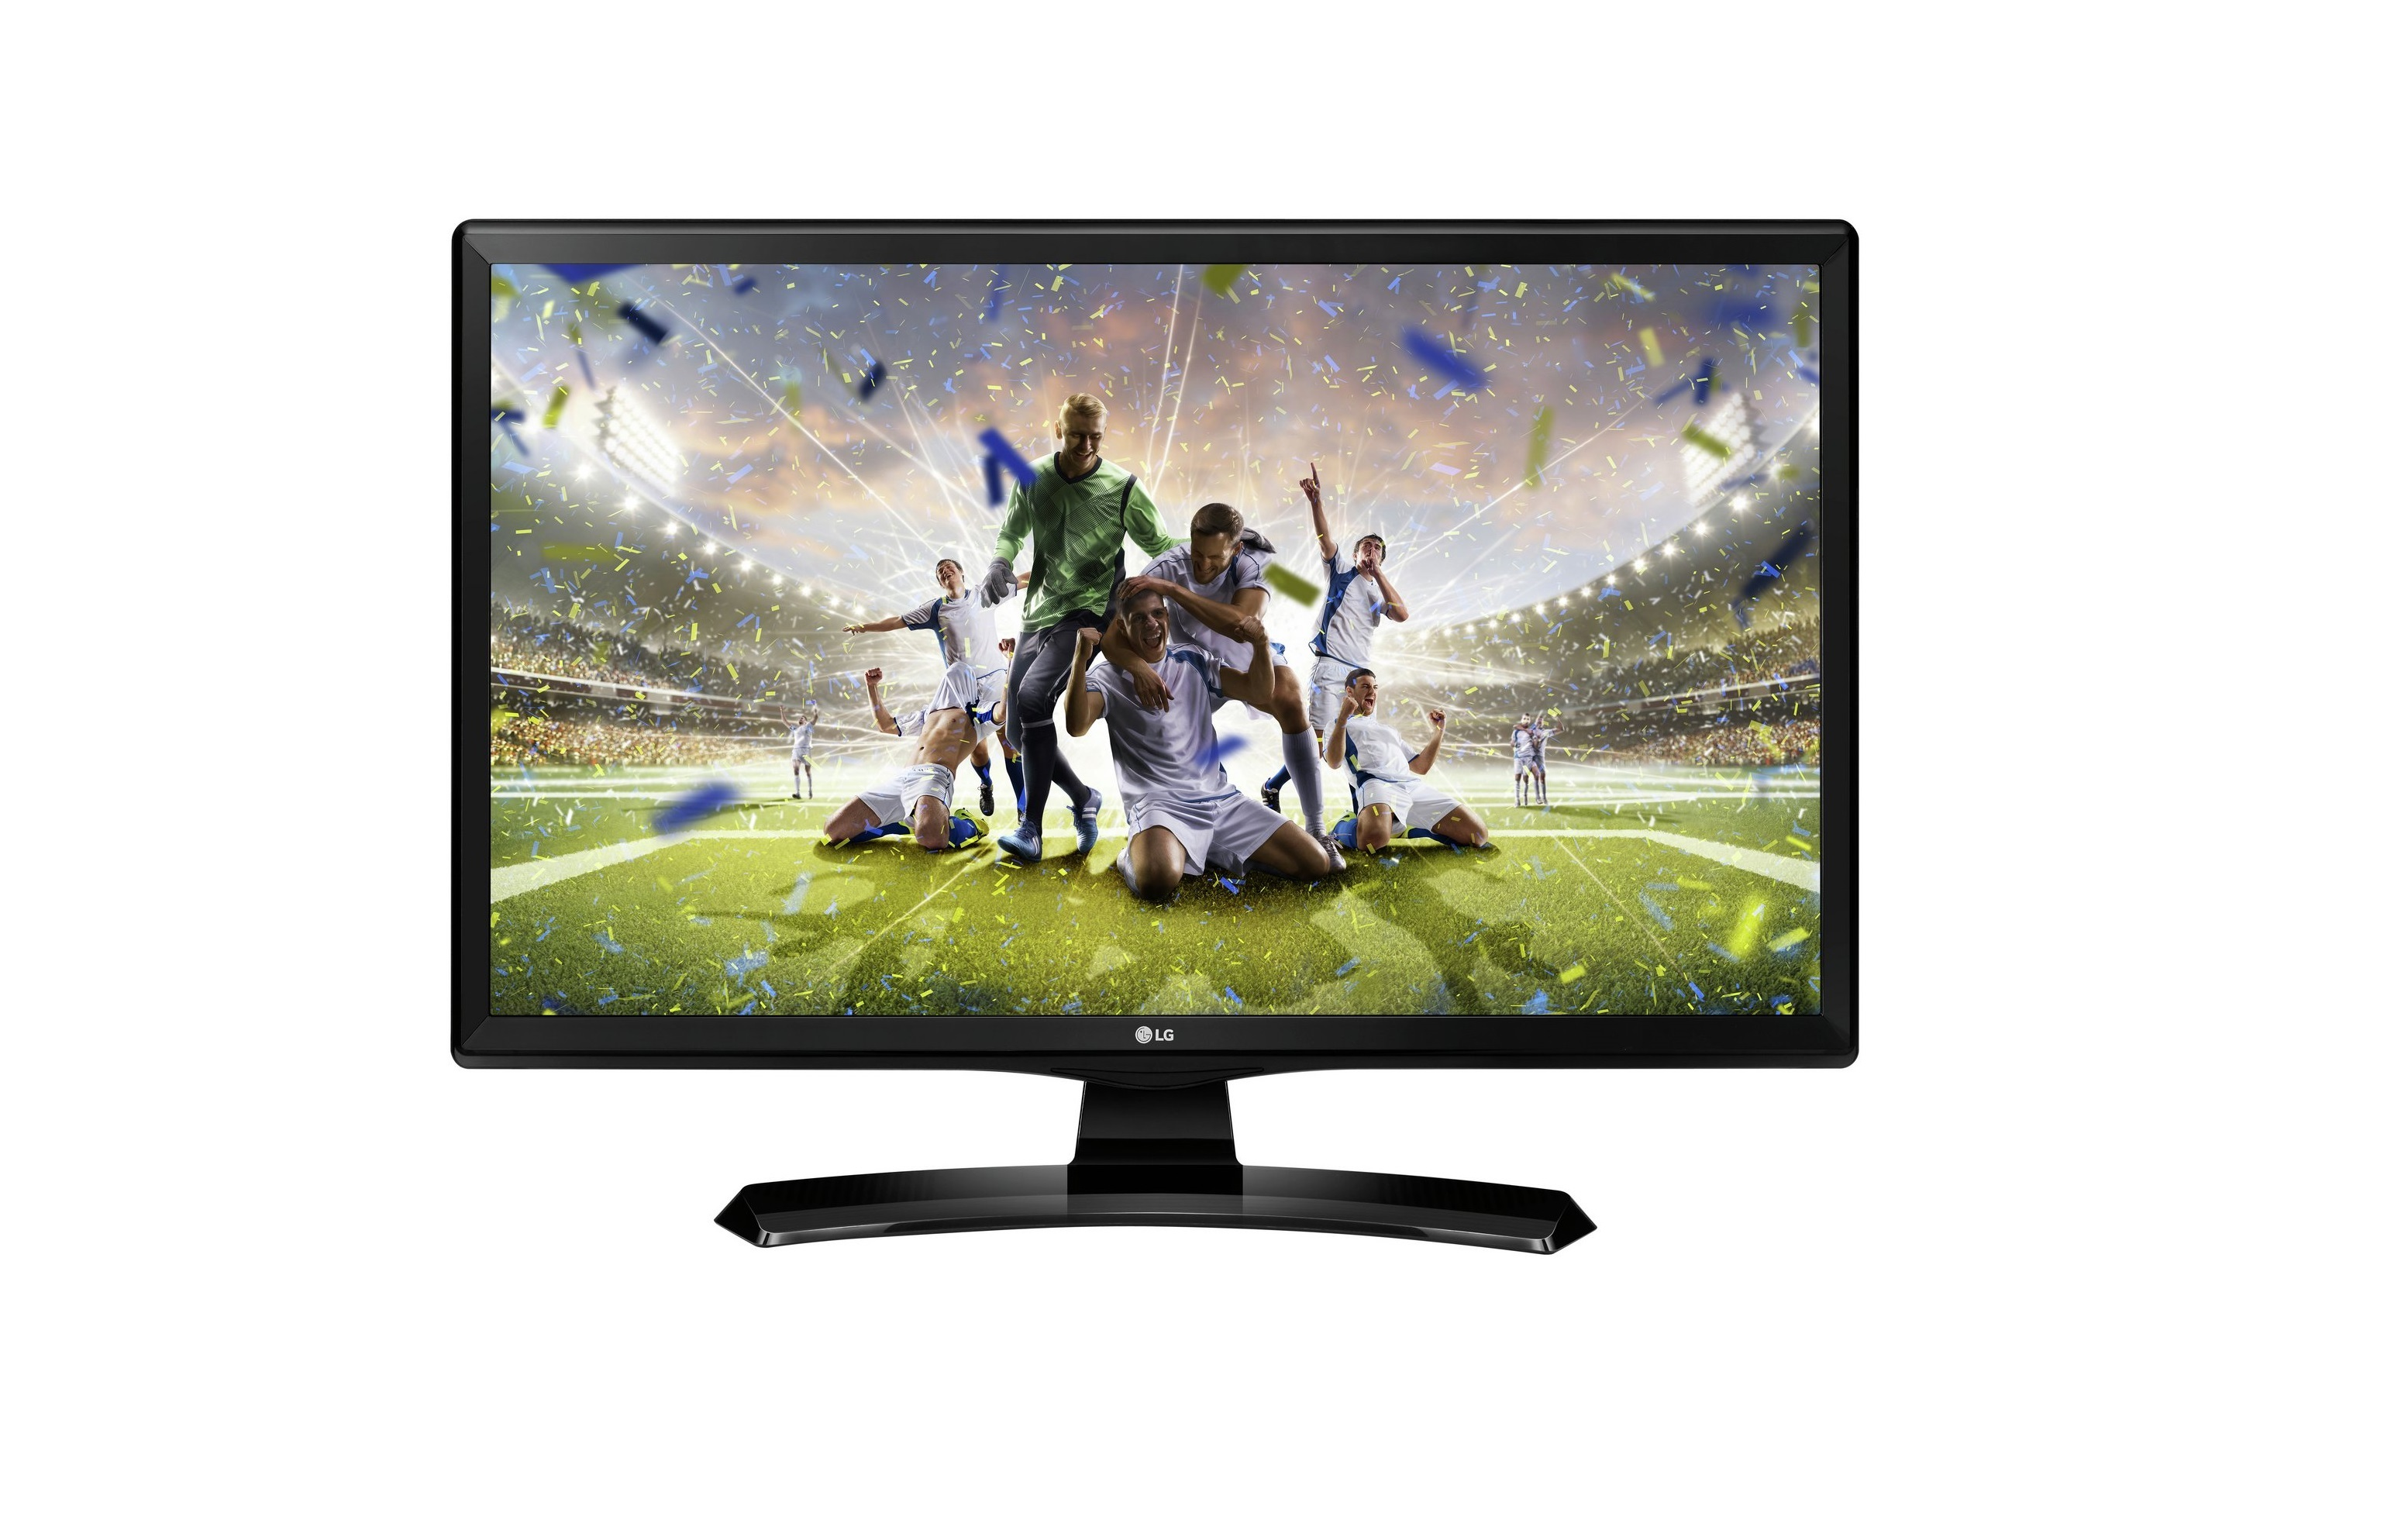 If Youu0027re Looking For A Small TV For The Bedroom Or The Kitchen, The  21.5in, Full HD LG 22MT49DF TV Is A Good Choice. At Its Price, Thereu0027s Not  Much To ...